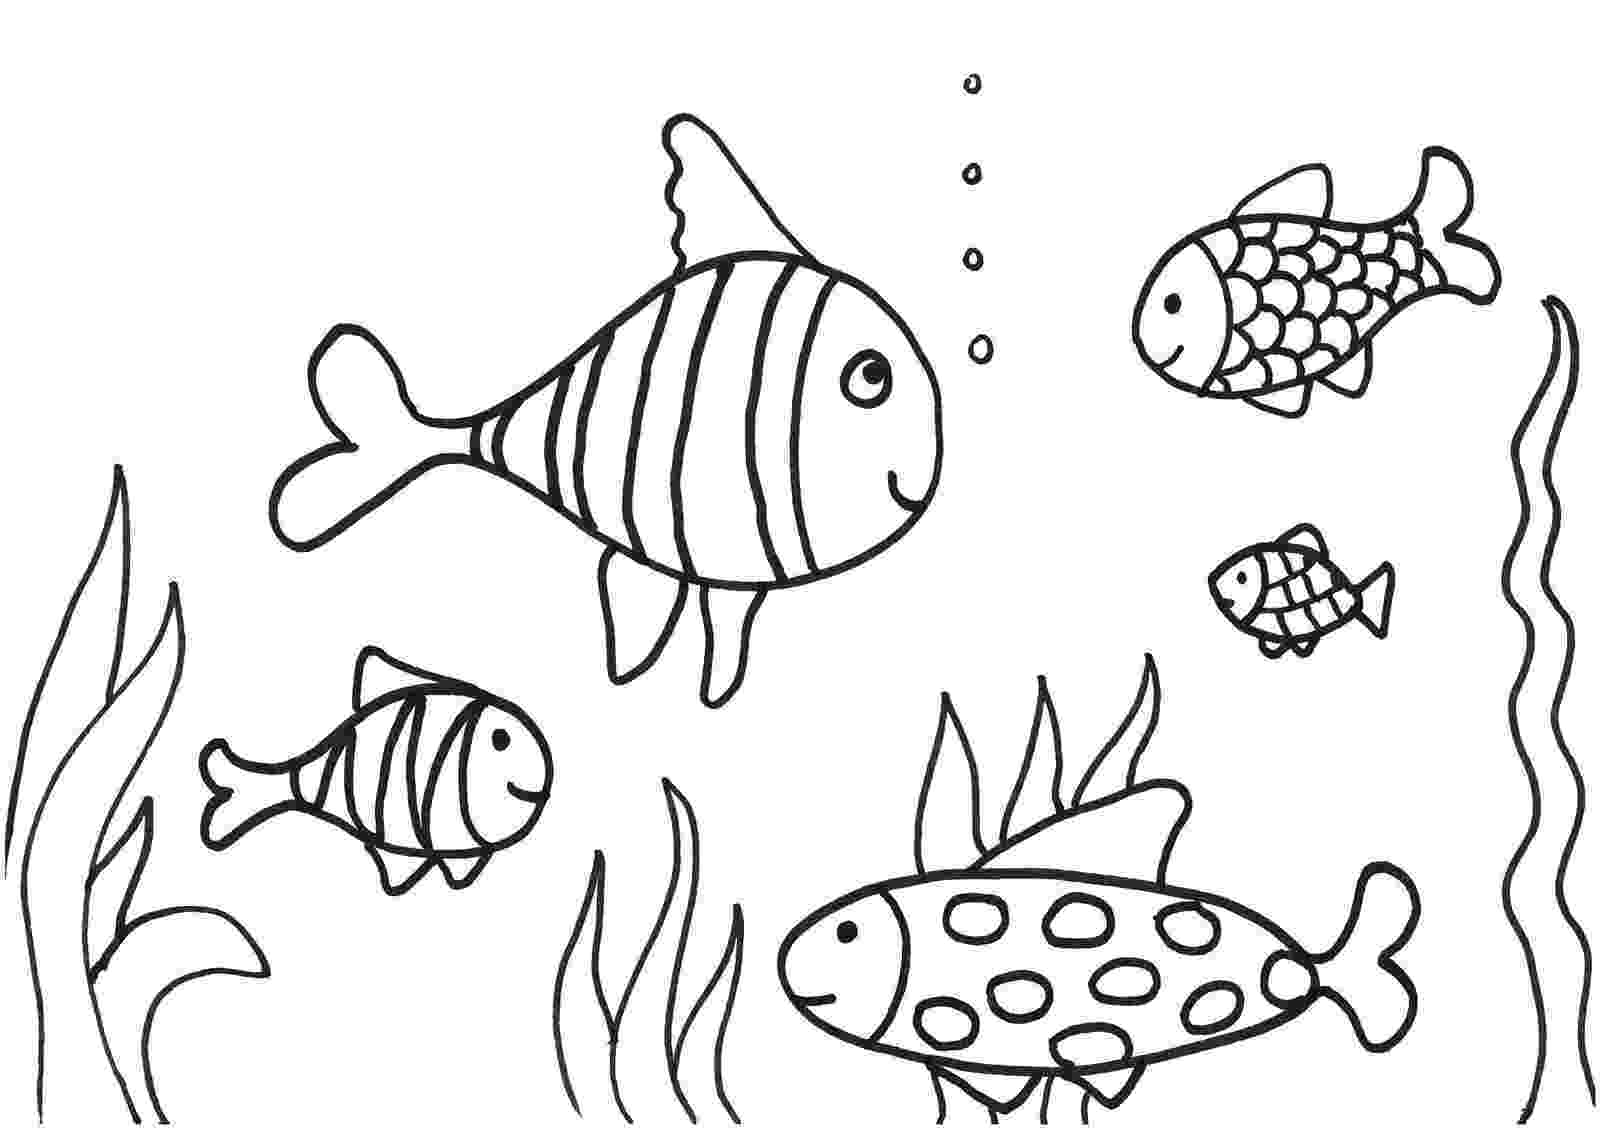 coloring pages easy simple fish coloring pages download and print for free coloring easy pages